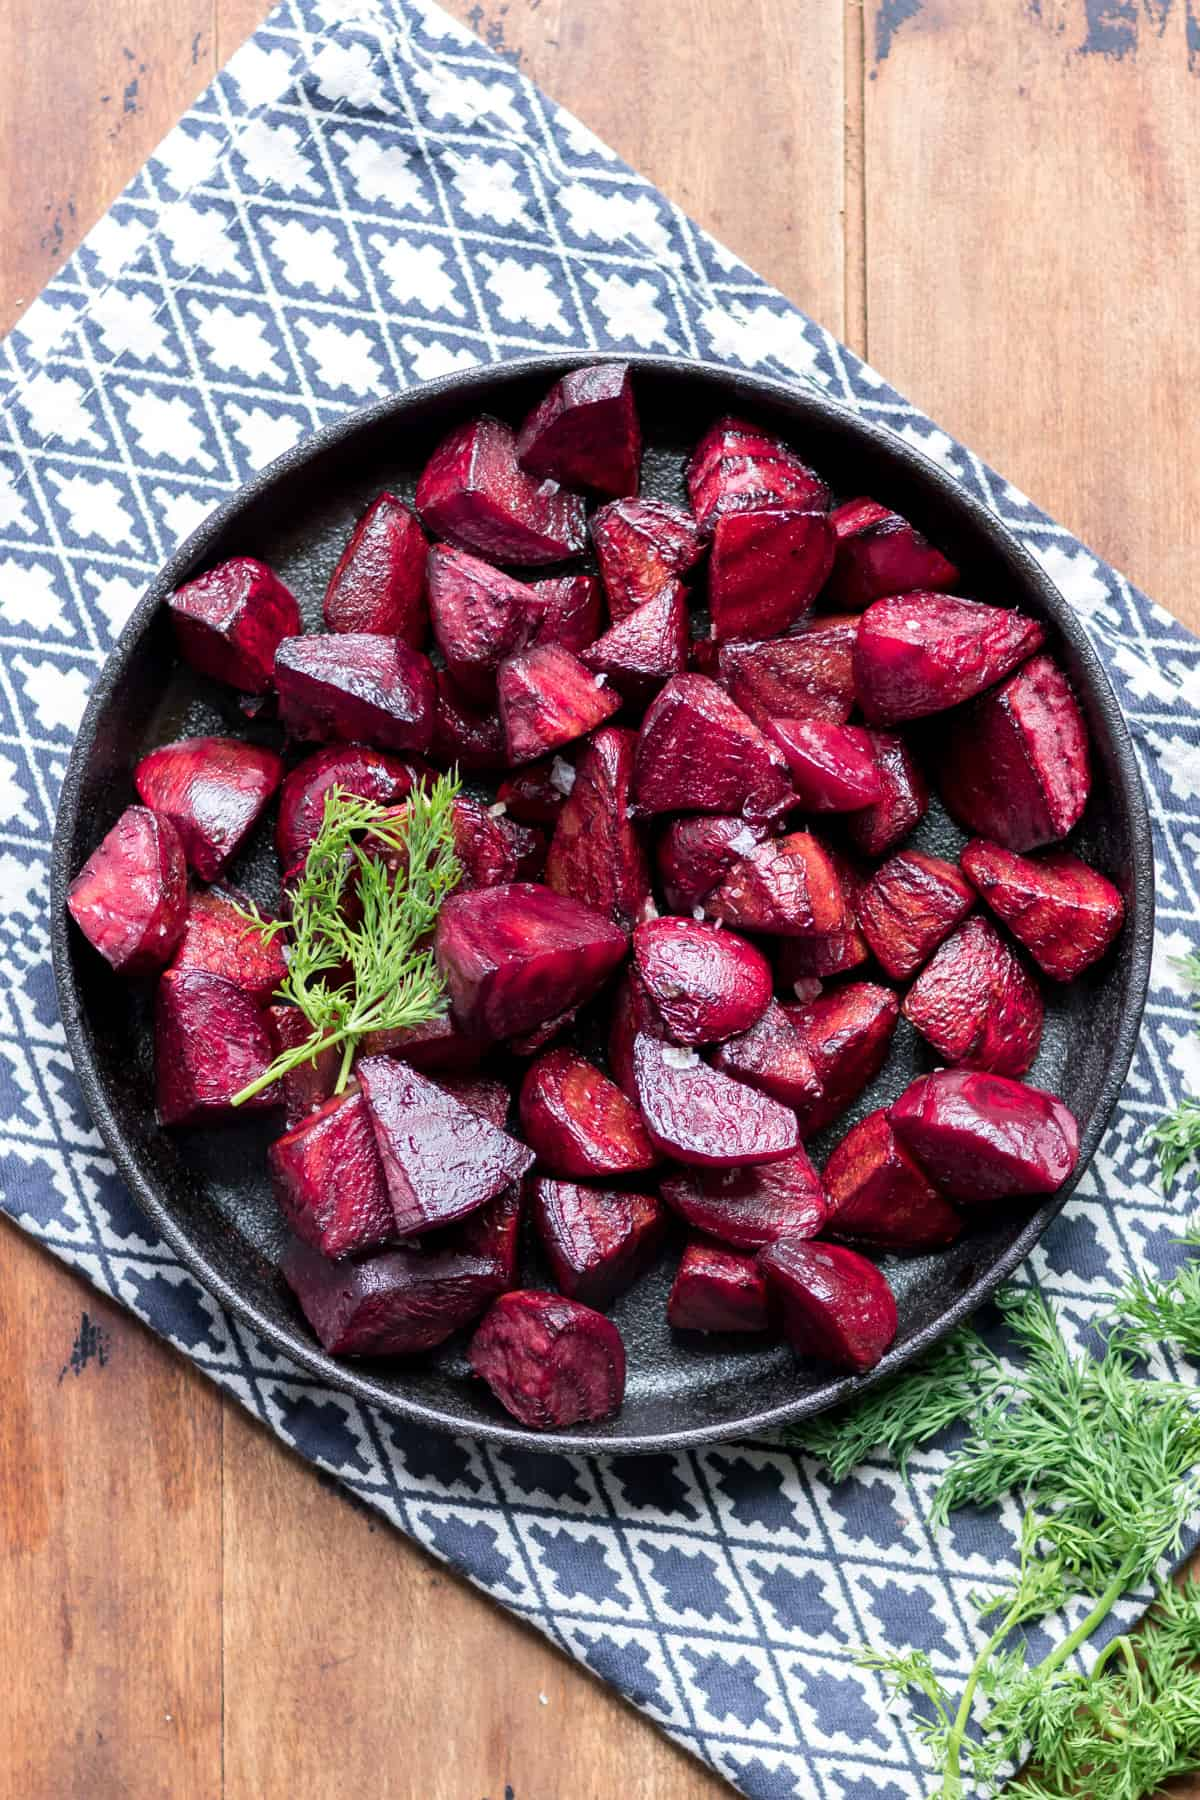 Plate of beets.